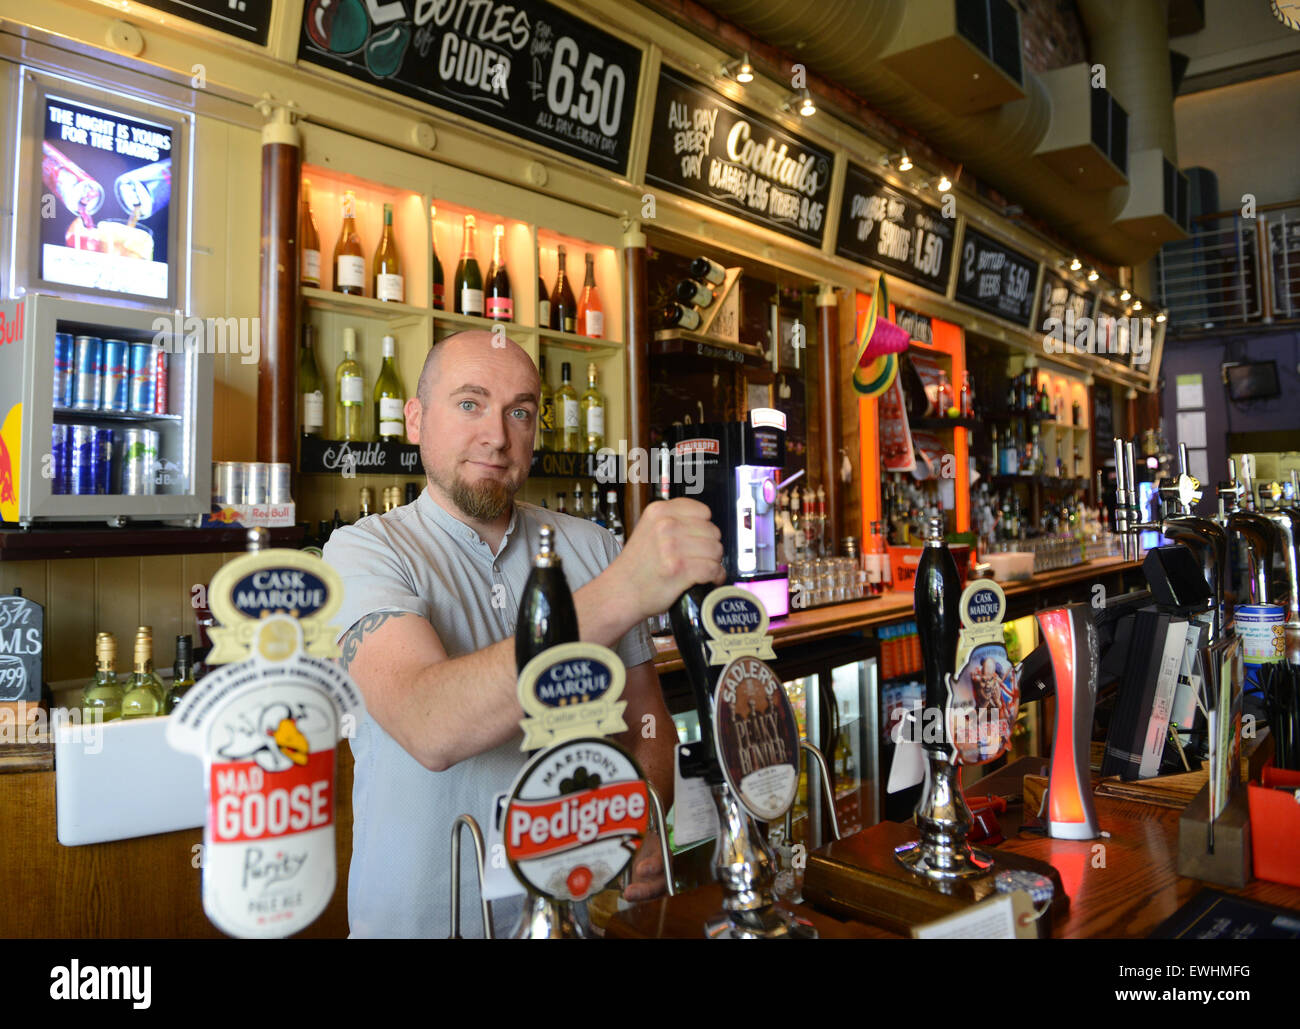 Barman pulling a pint of beer ale at The Castle in Coventry UK - Stock Image